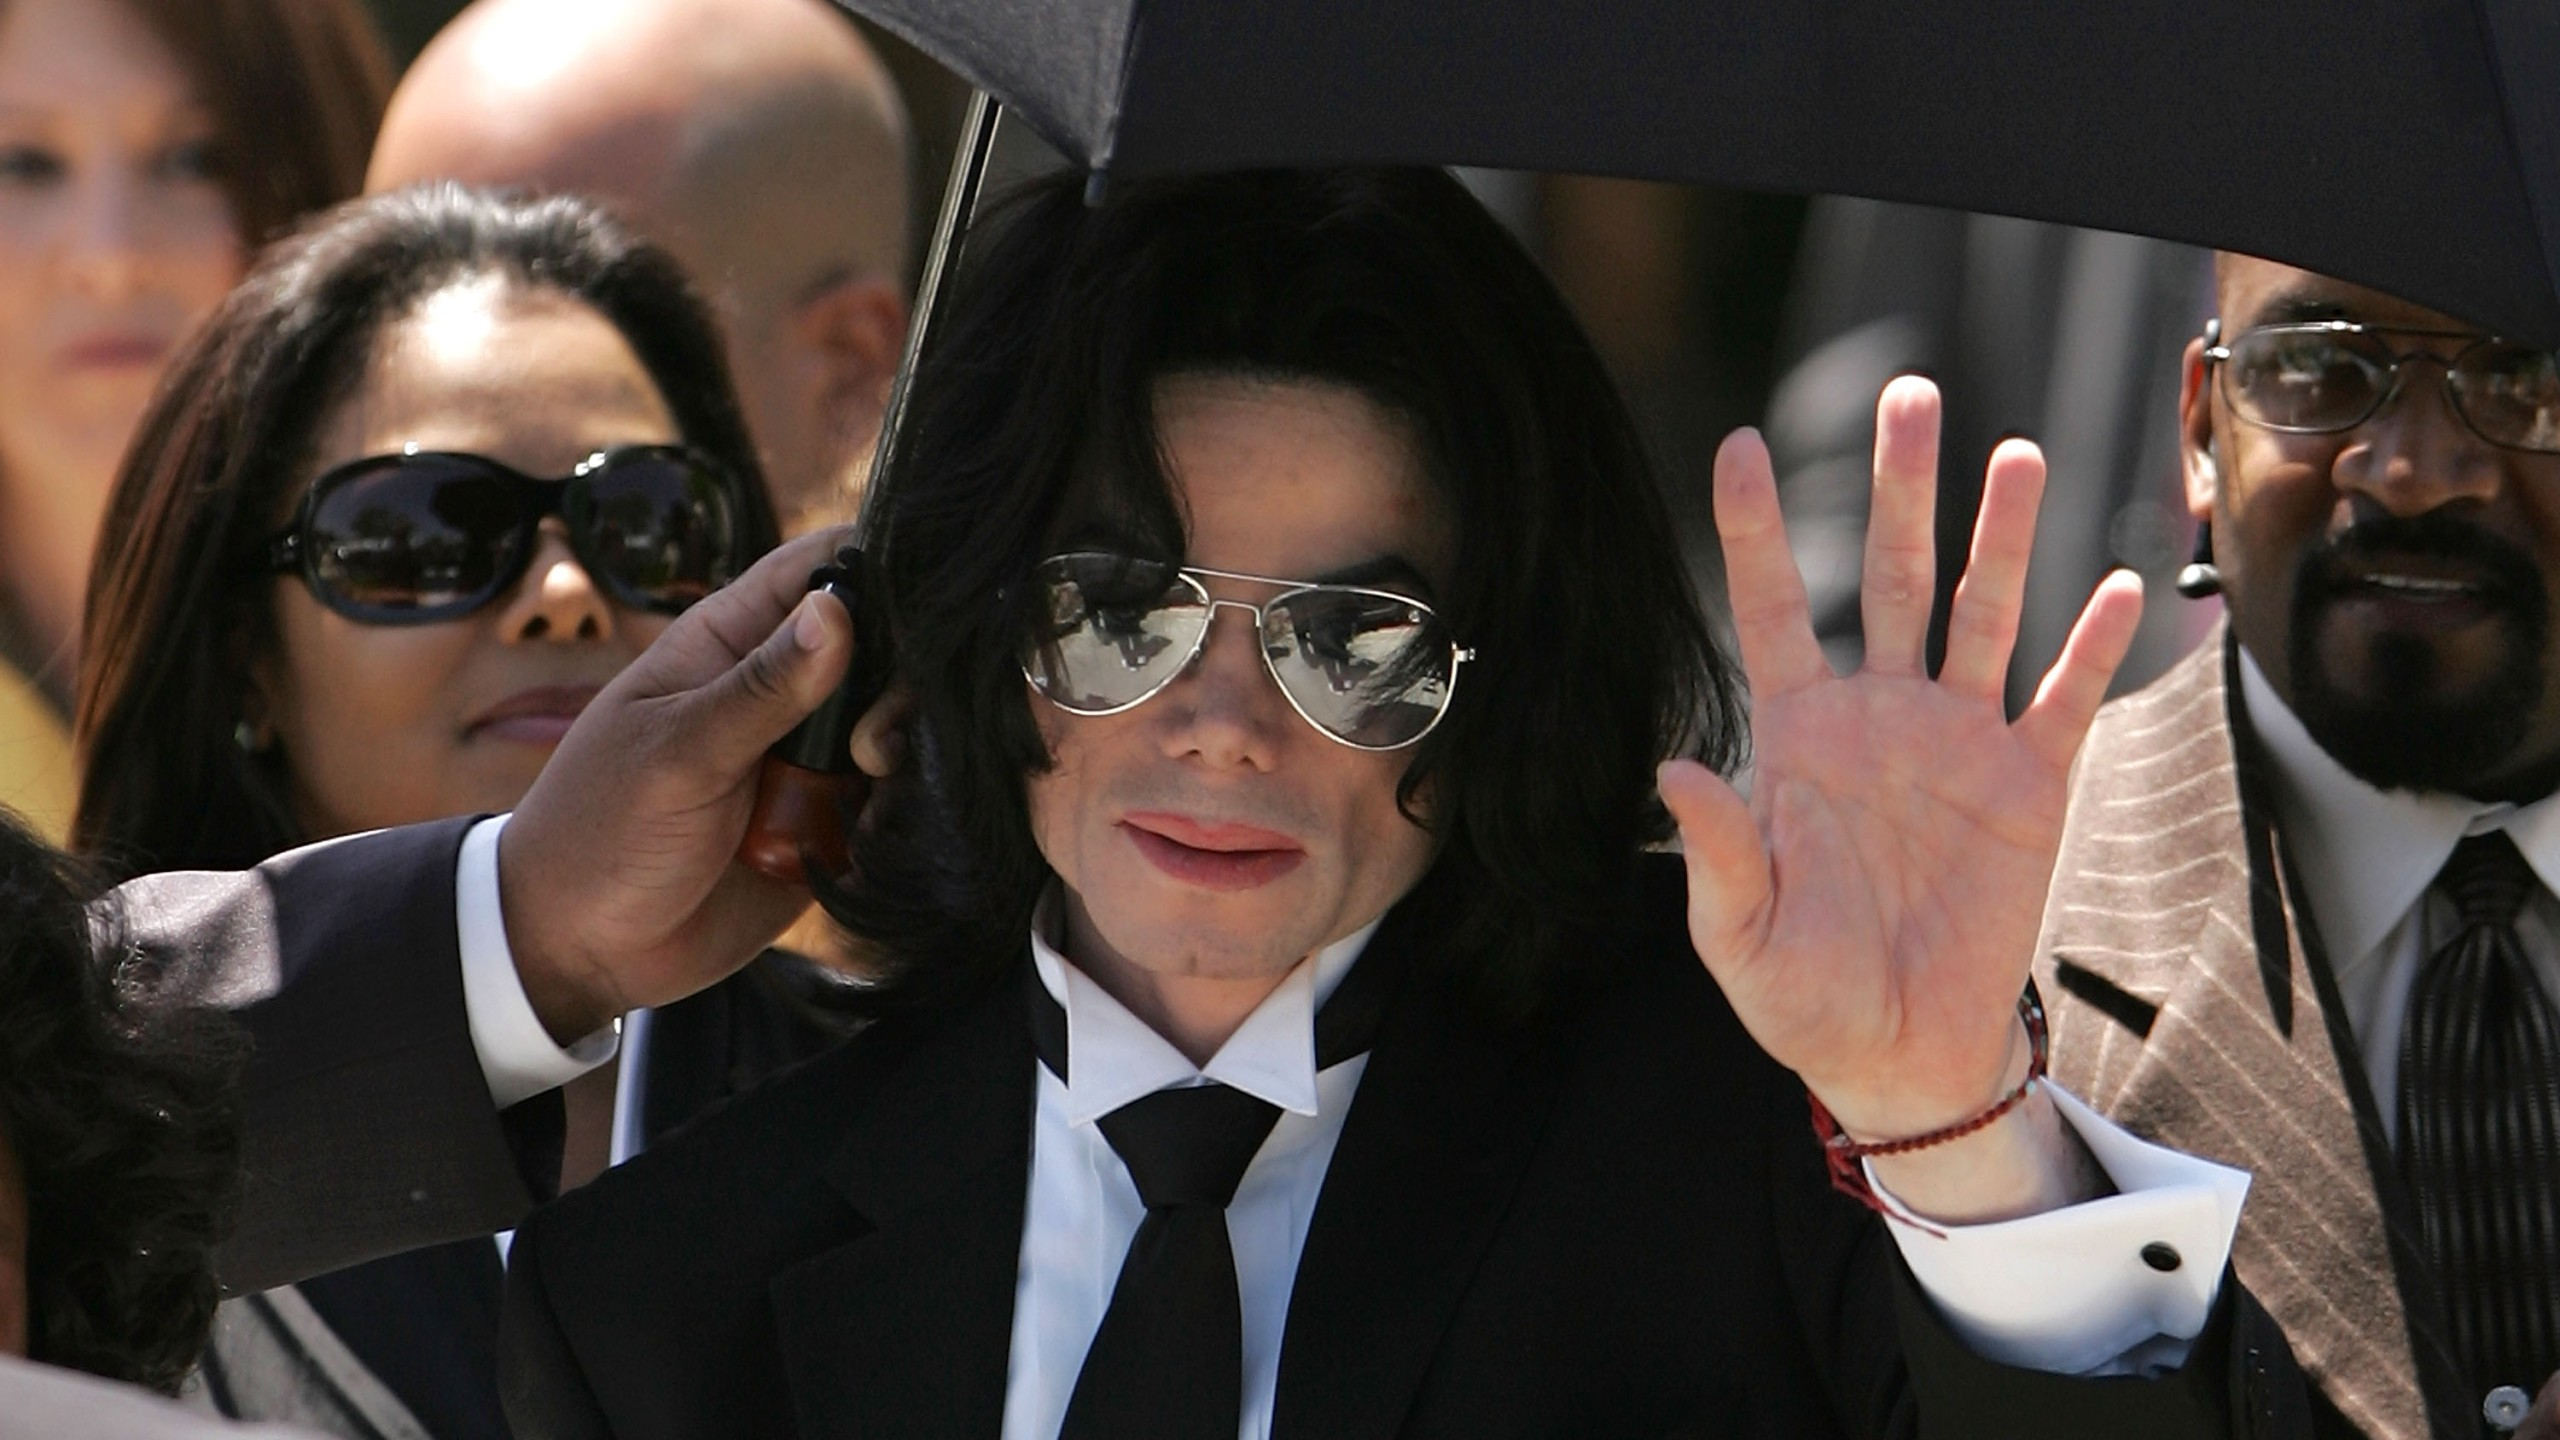 Michael Jackson waves to fans after he is found not guilty on all counts in his child molestation trial at the Santa Barbara County Courthouse June 13, 2005 in Santa Maria, California. (Credit: Win McNamee/Getty Images)